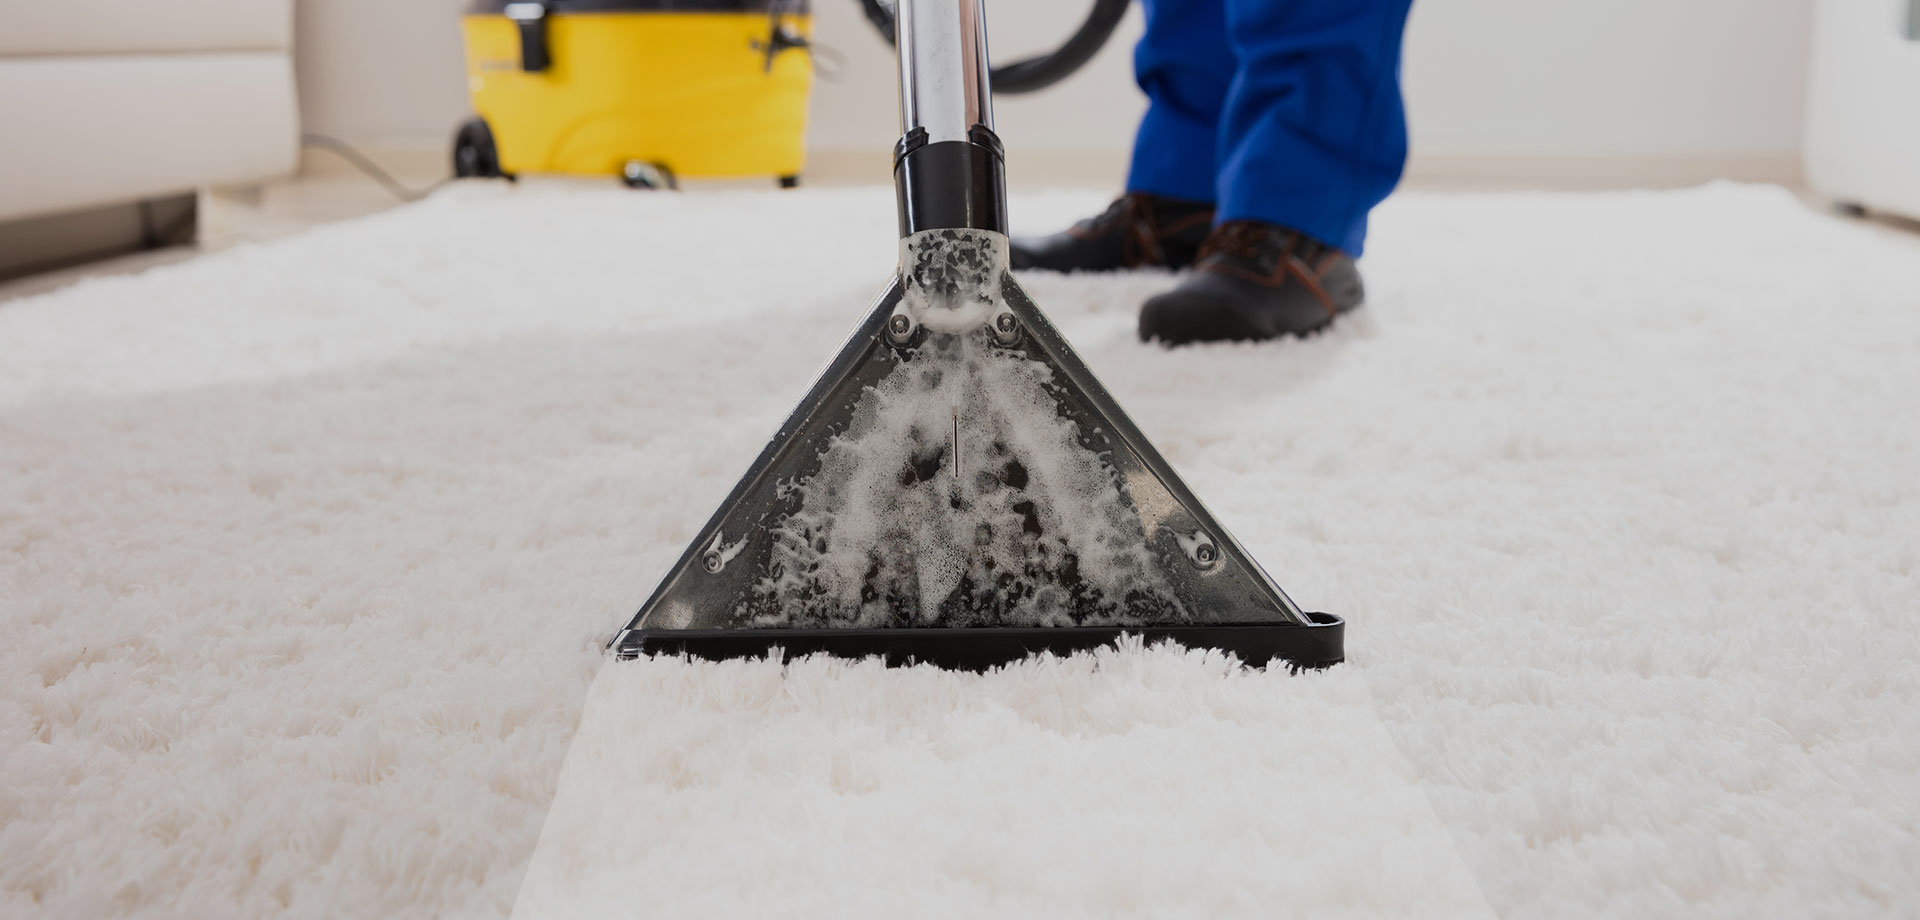 Spruce up Your Home With Freshly-Cleaned Carpets